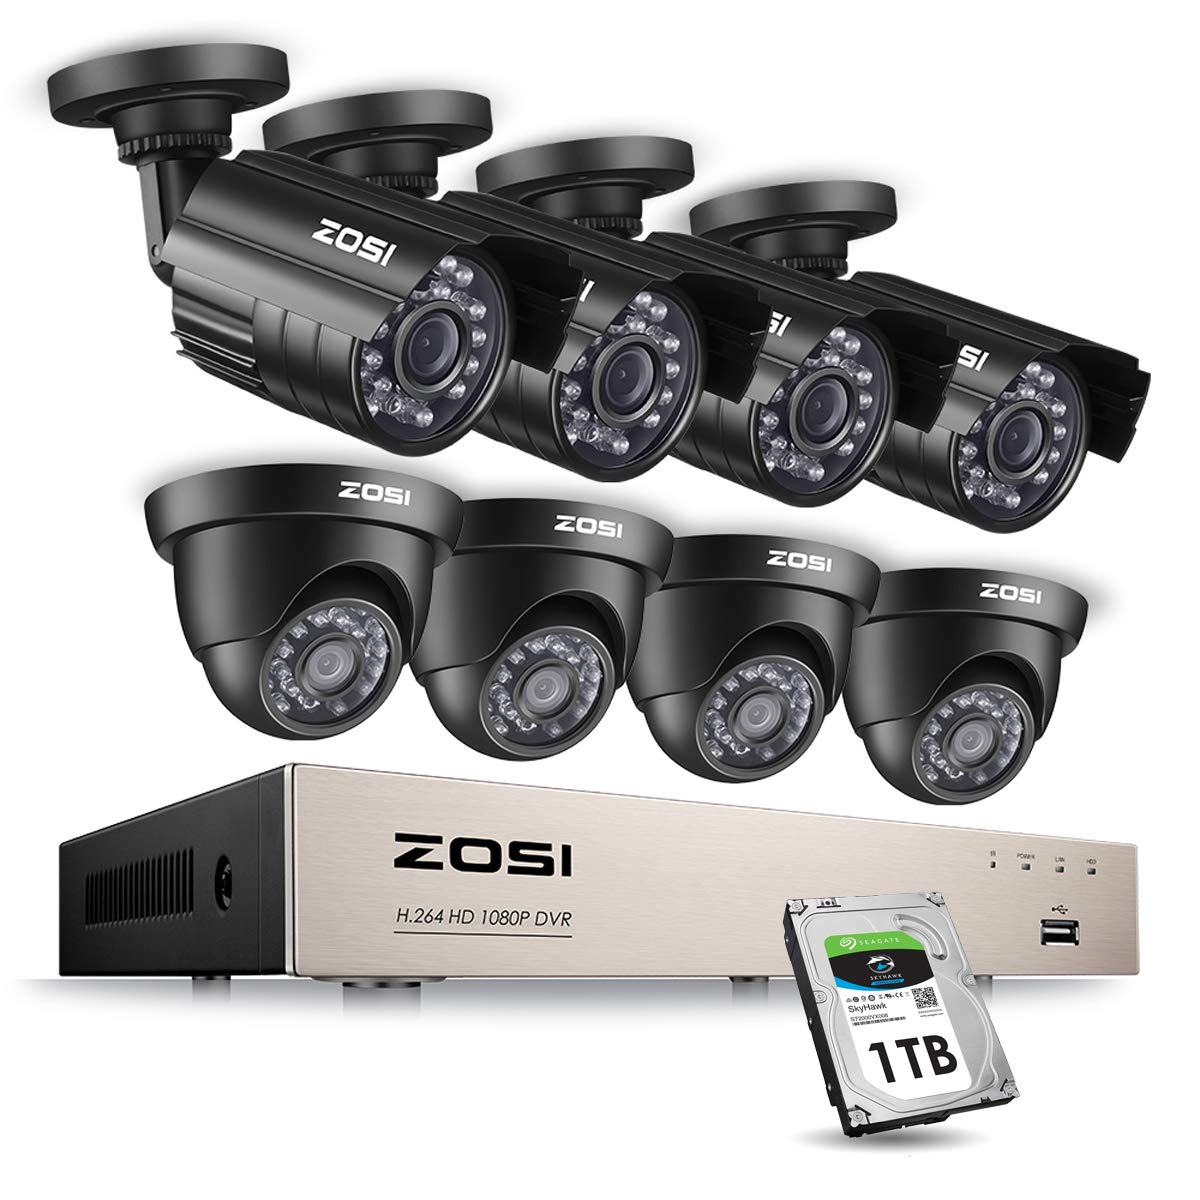 ZOSI 8CH 1080P Security Cameras System Surveillance Dvr with 2.0MP (8) Waterproof Security Cameras & 1TB Hard Drive for Home Office Security Outdoor Indoor & Motion Detection by ZOSI